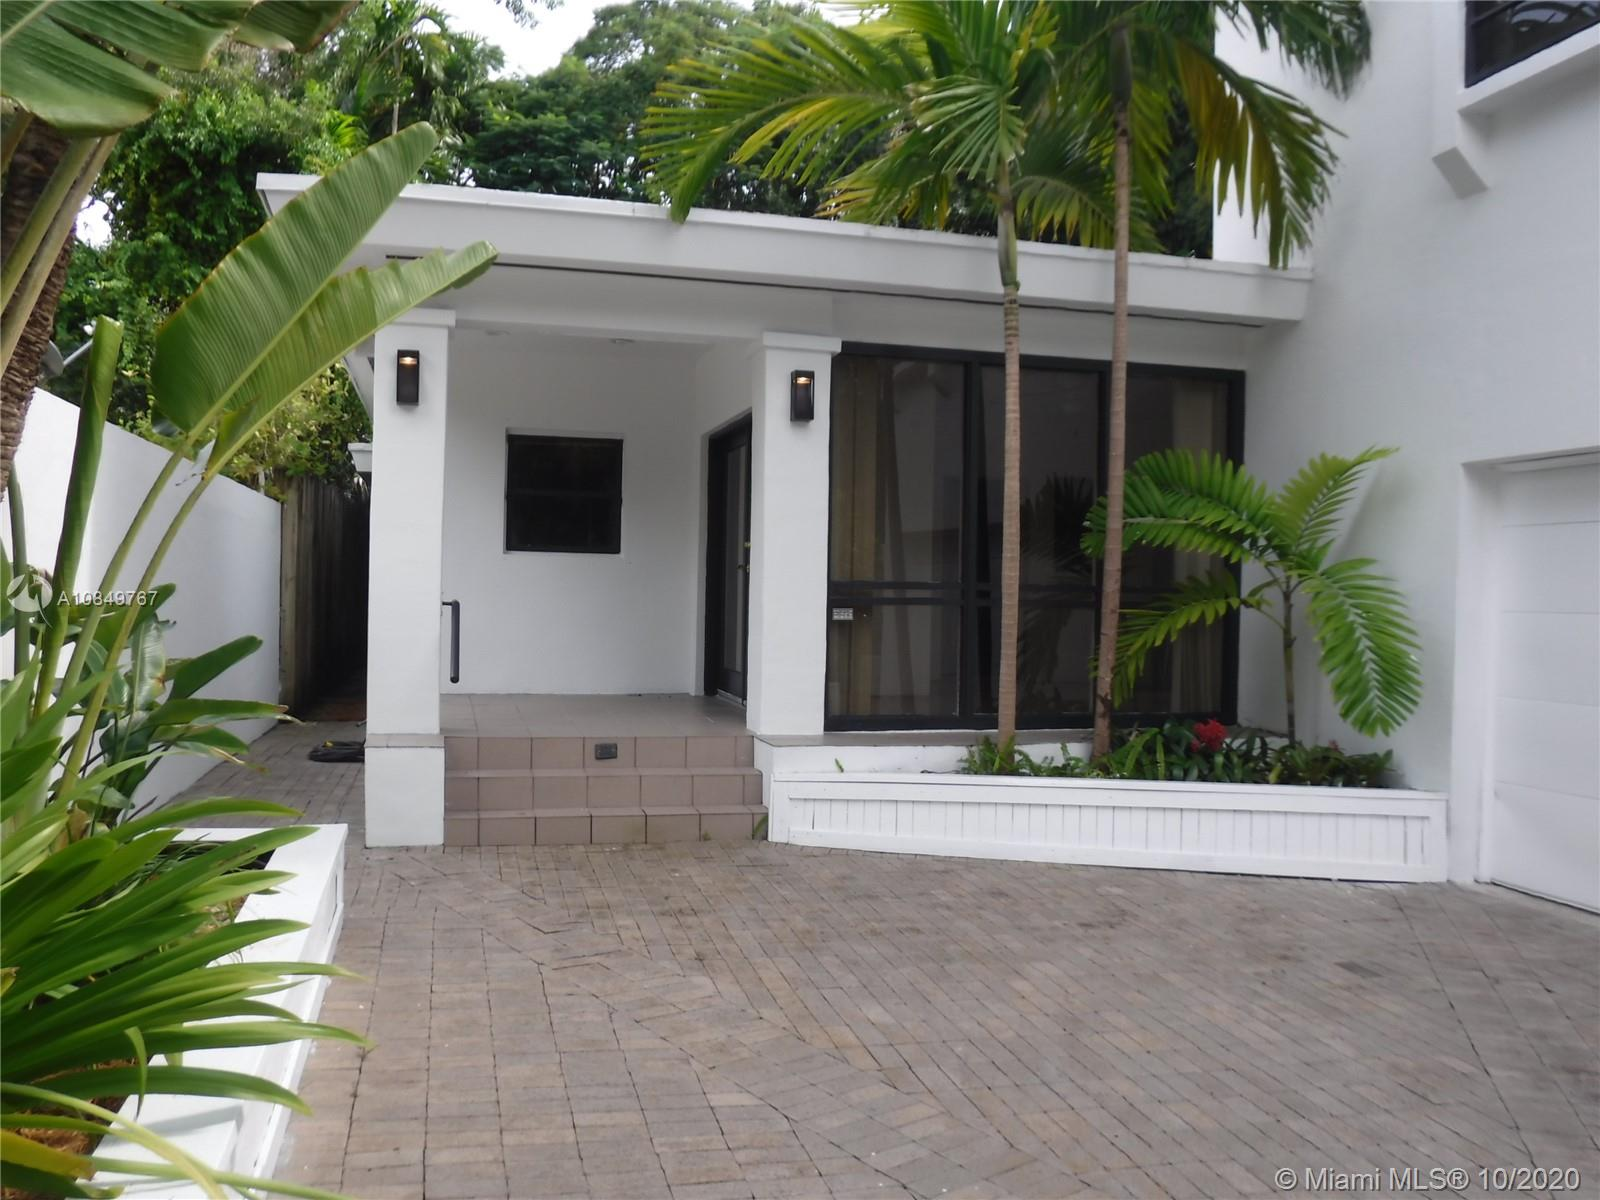 2222 Trapp Ave, Miami, Florida 33133, 3 Bedrooms Bedrooms, ,3 BathroomsBathrooms,Residential,For Sale,2222 Trapp Ave,A10849767